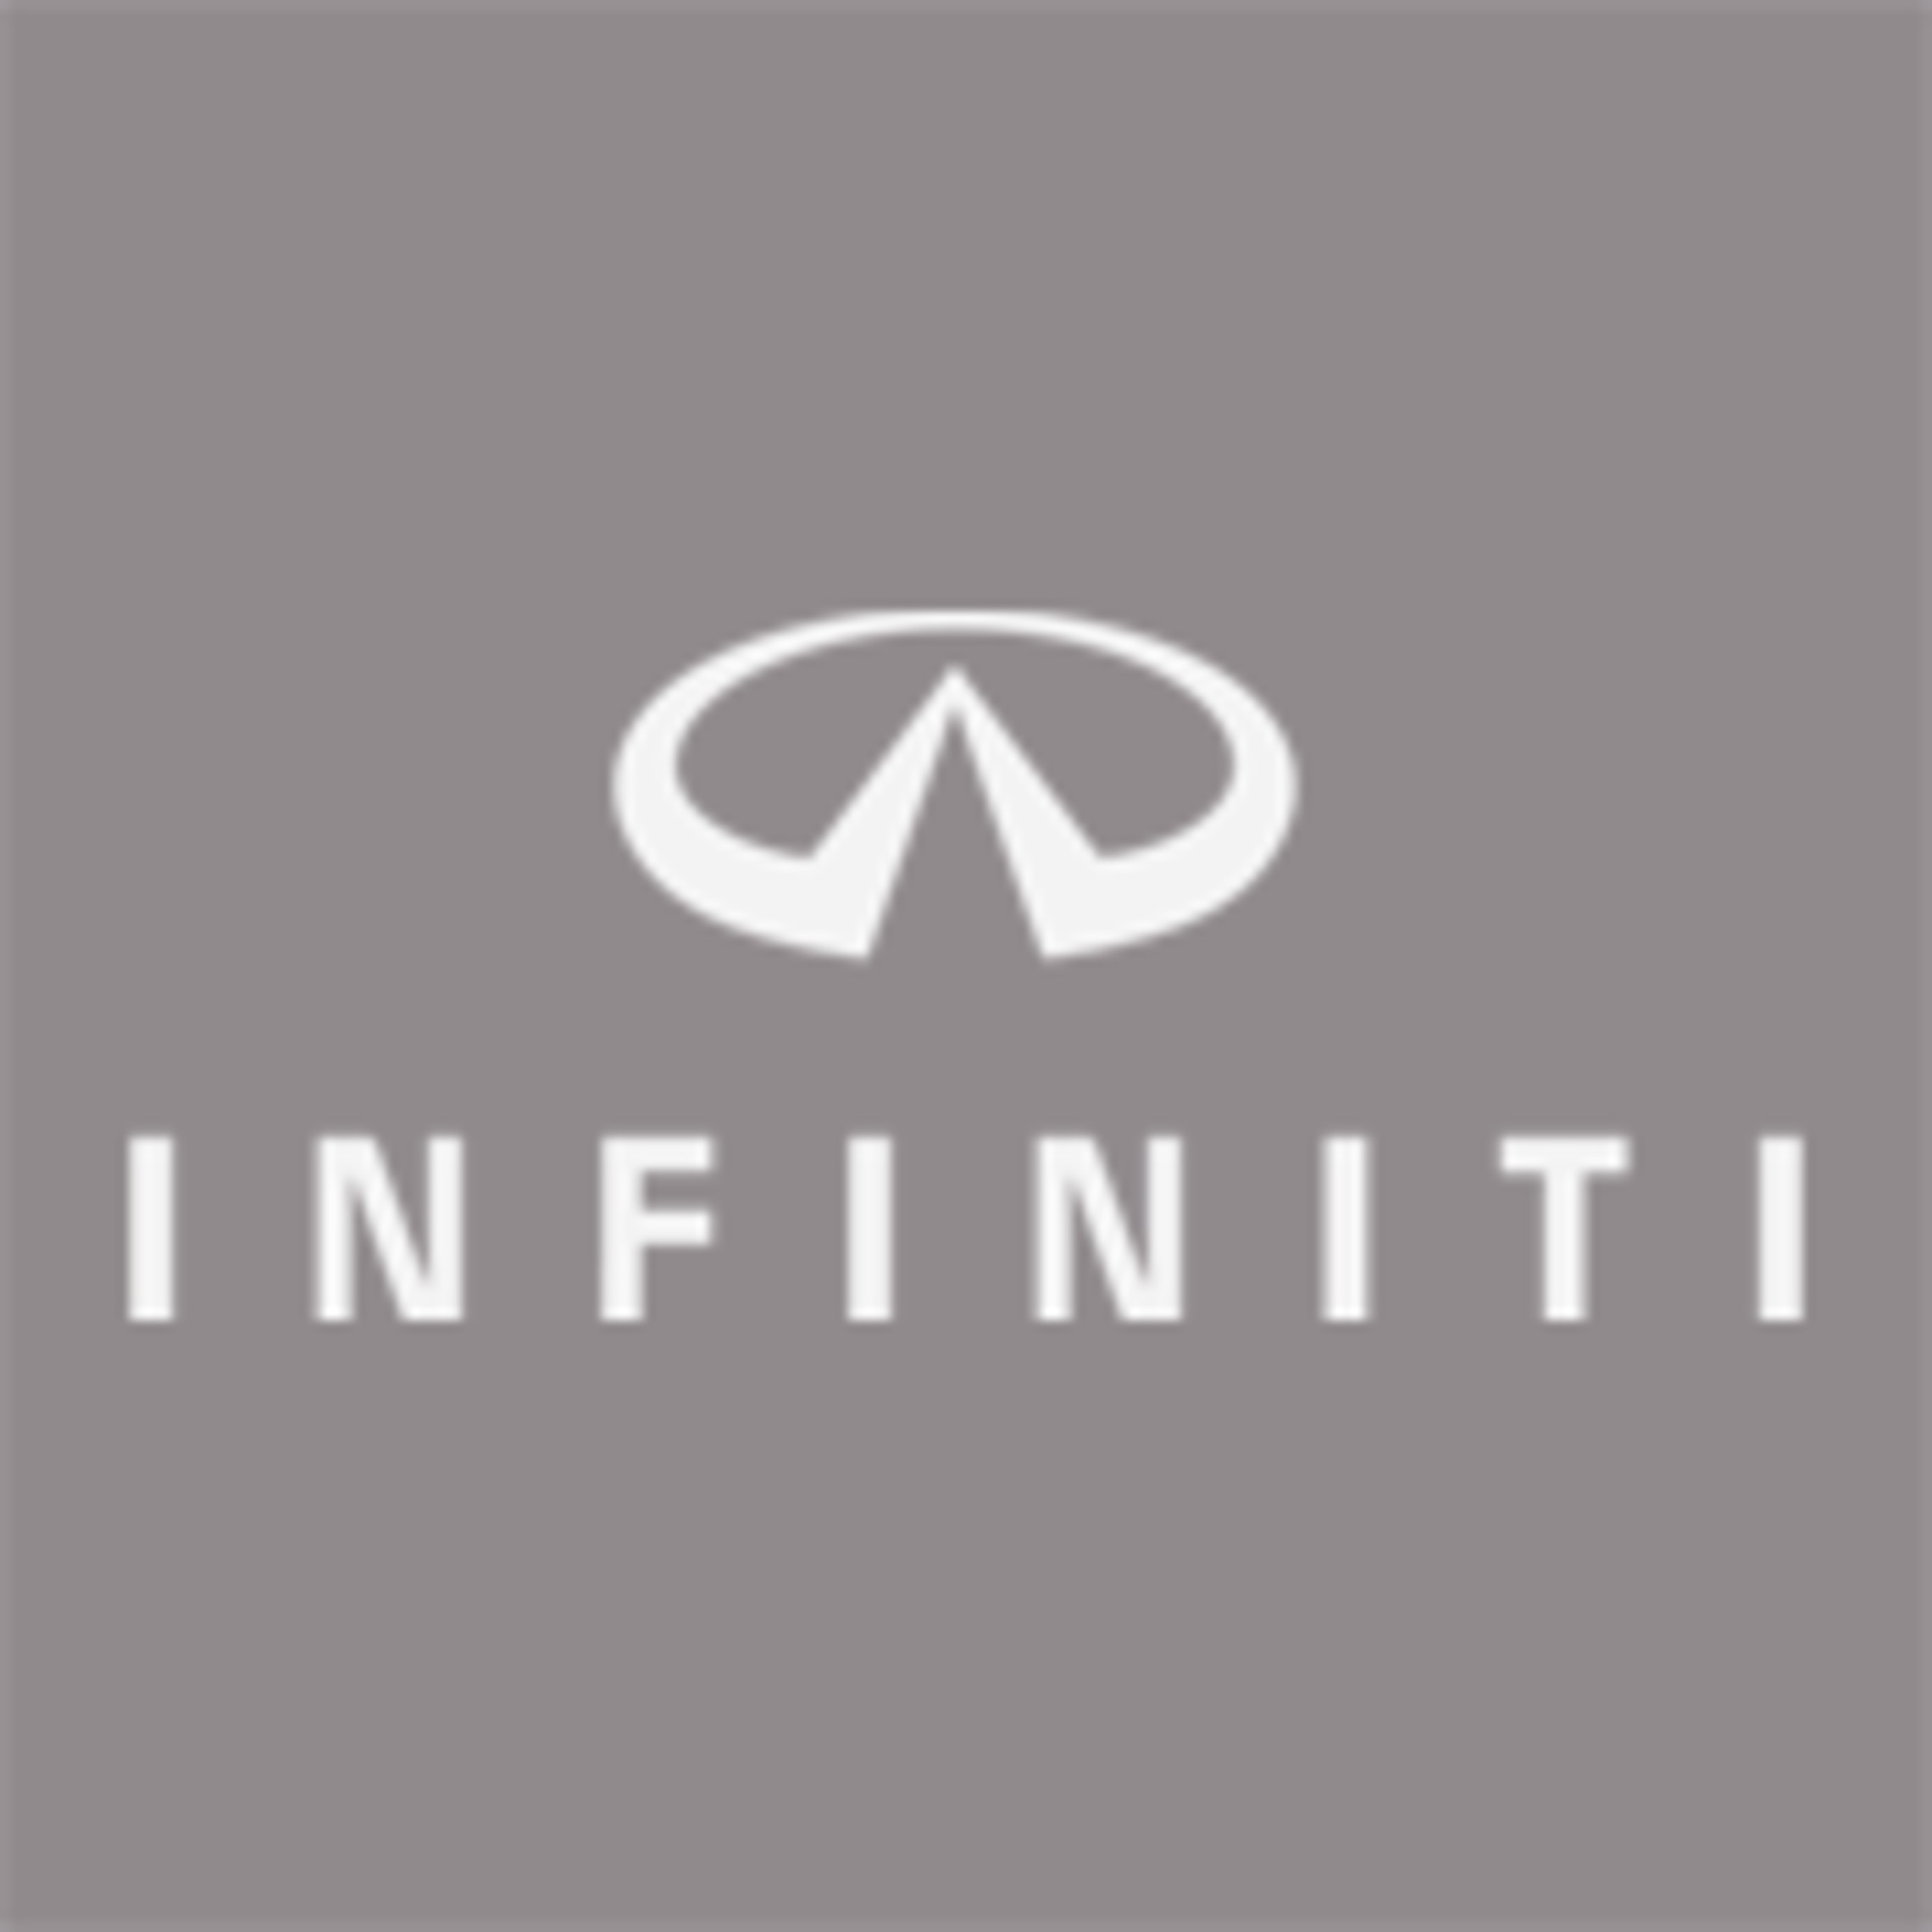 infiniti used car- company logo